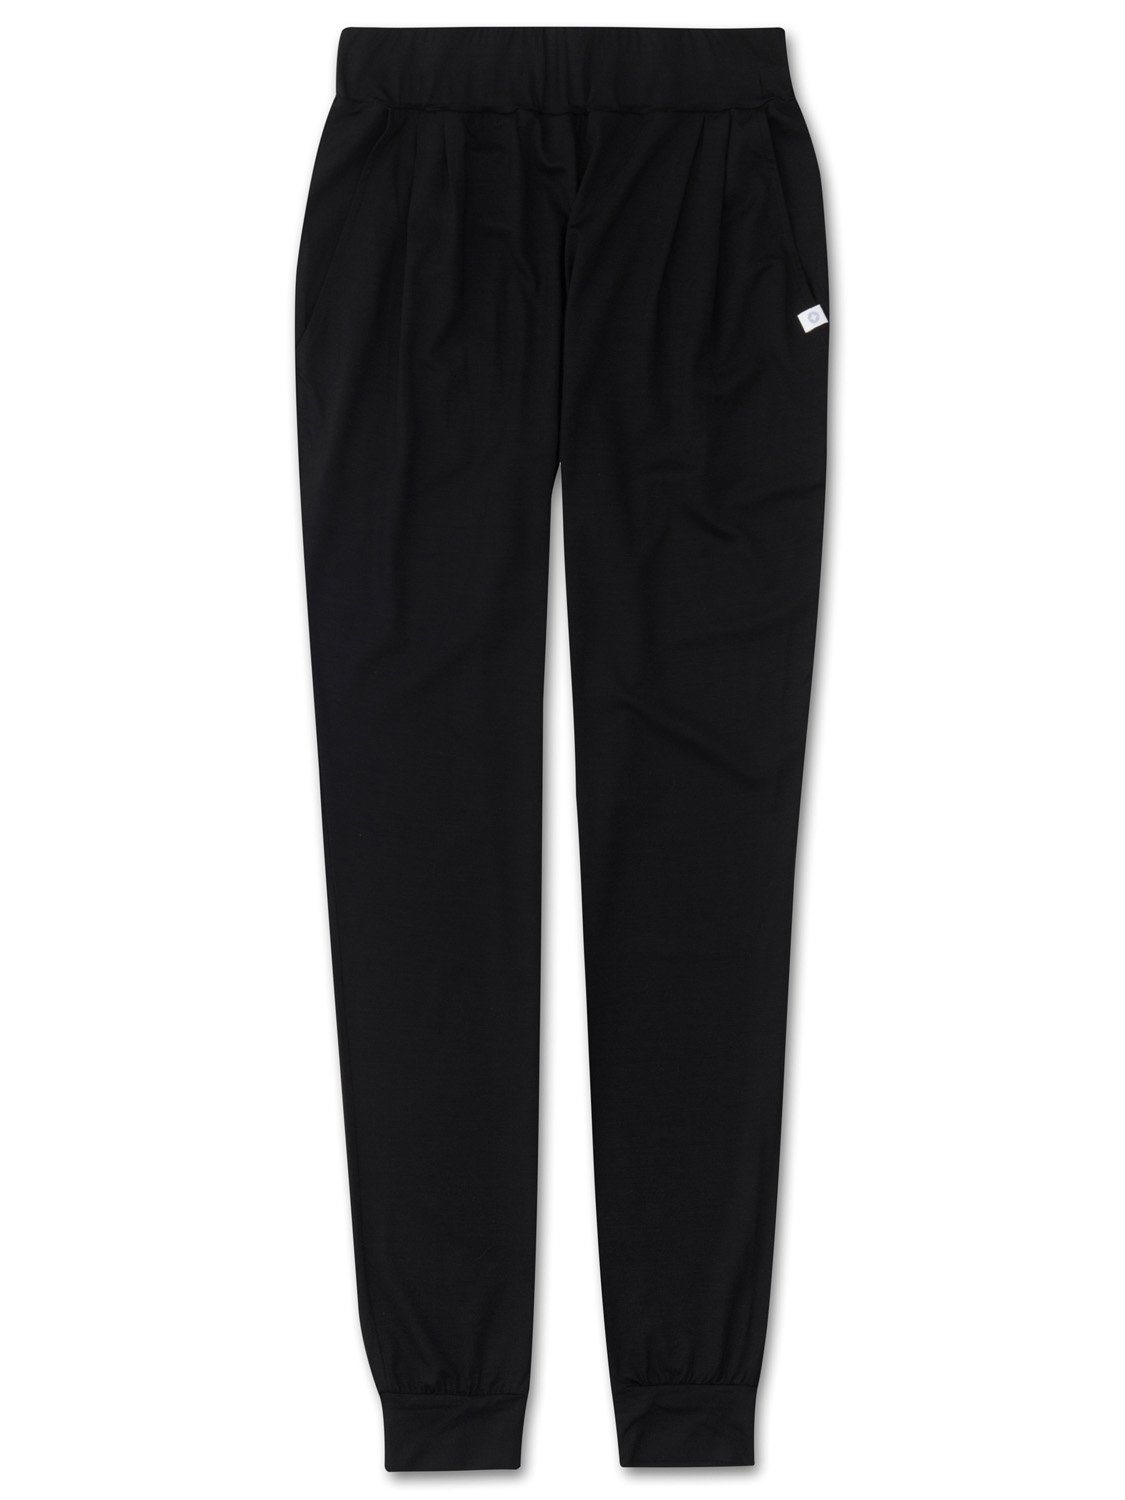 Women's Jersey Leisure Pants Basel Micro Modal Stretch Black